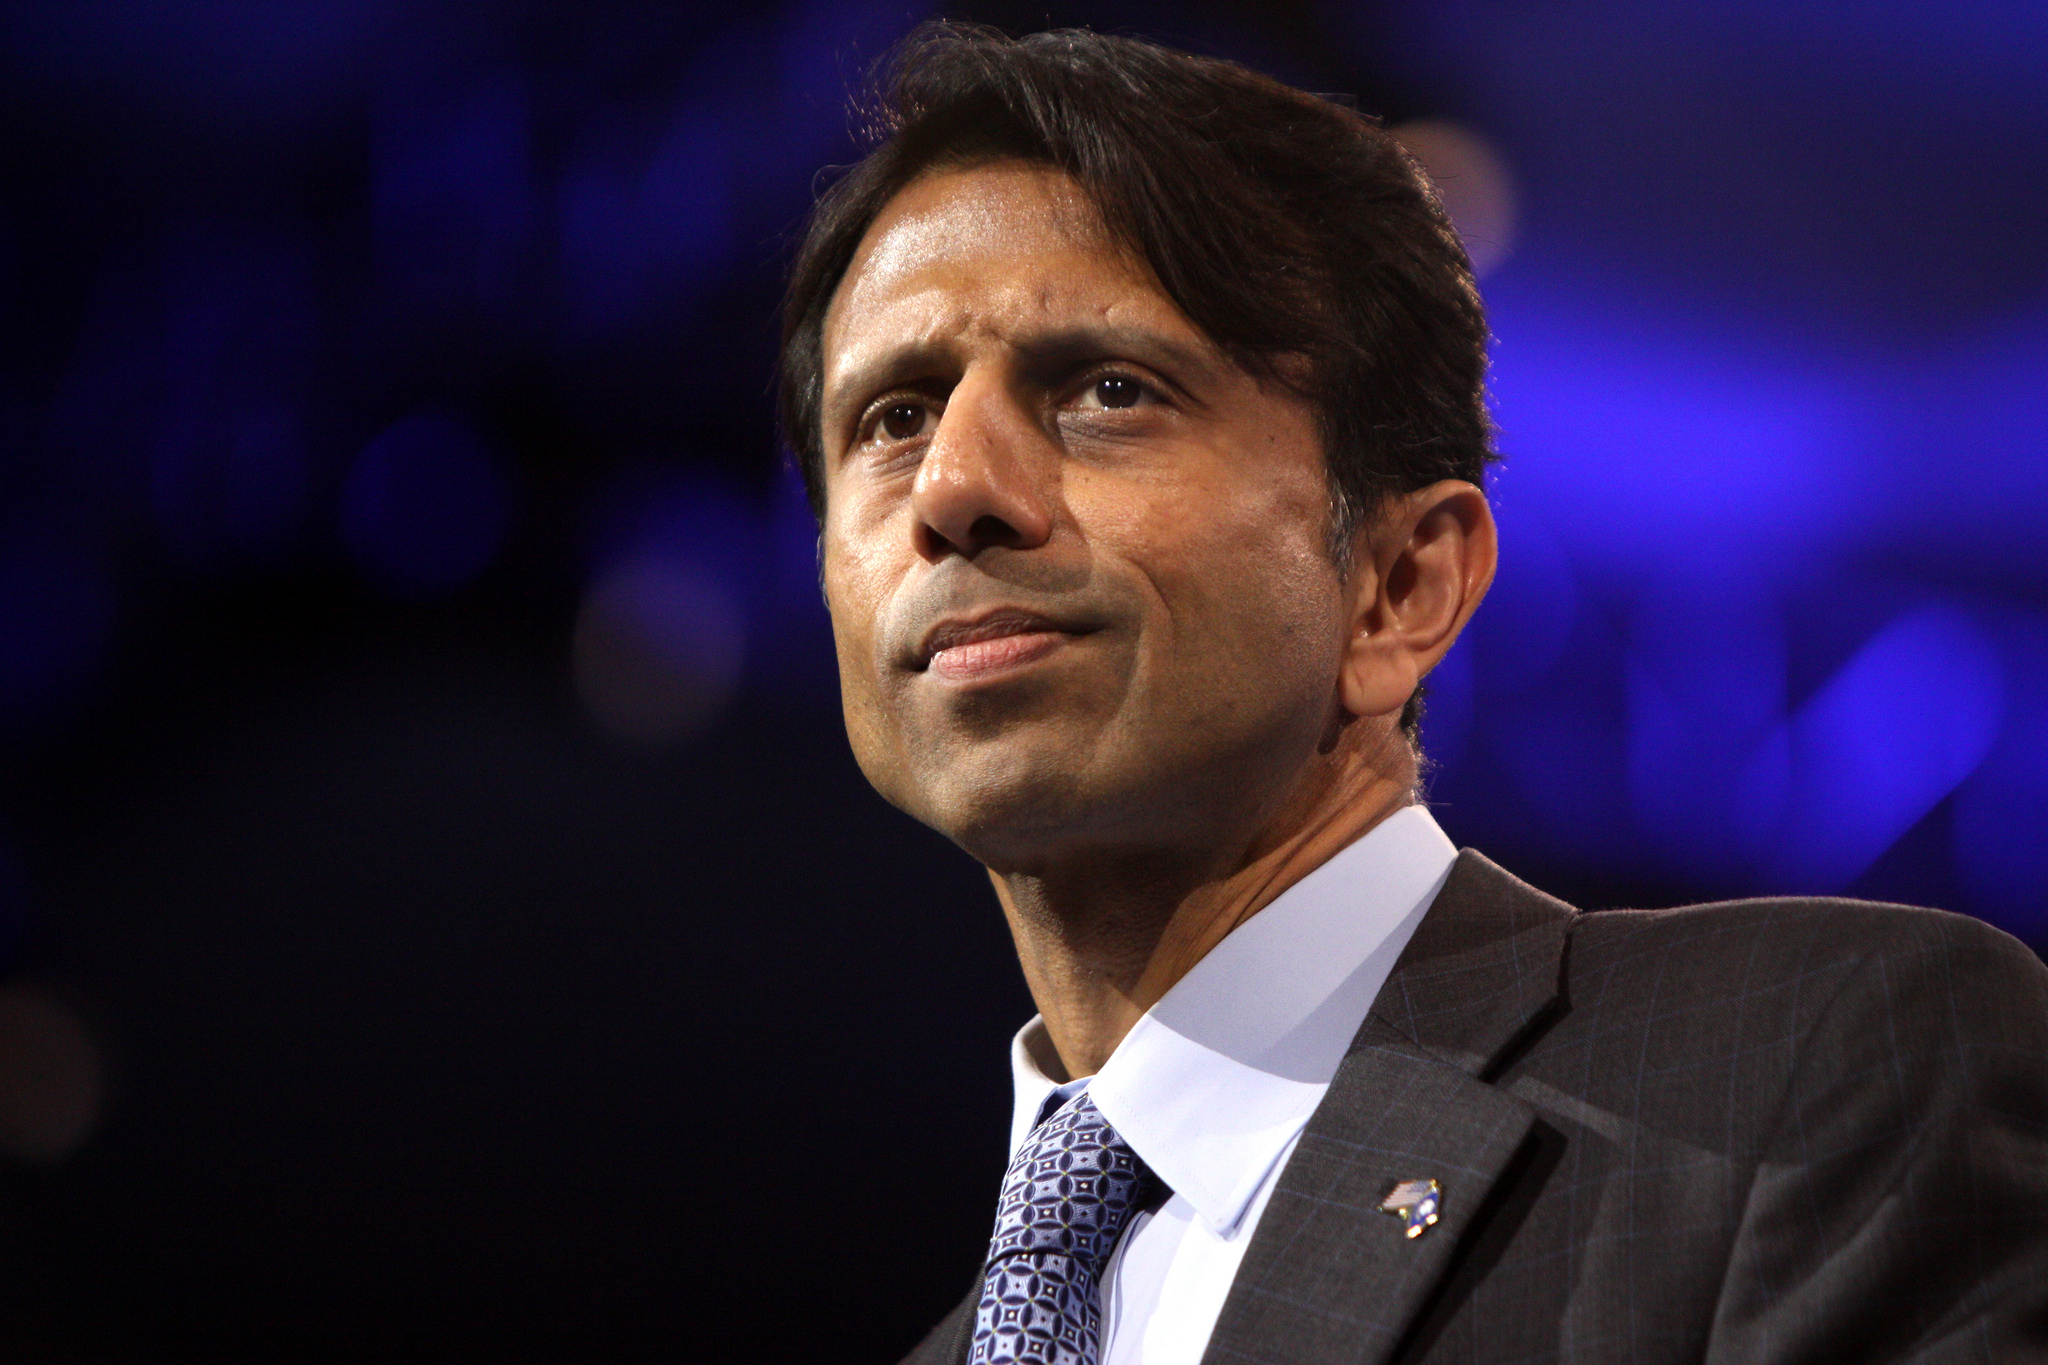 Where Bobby Jindal Stands on Immigration Issues